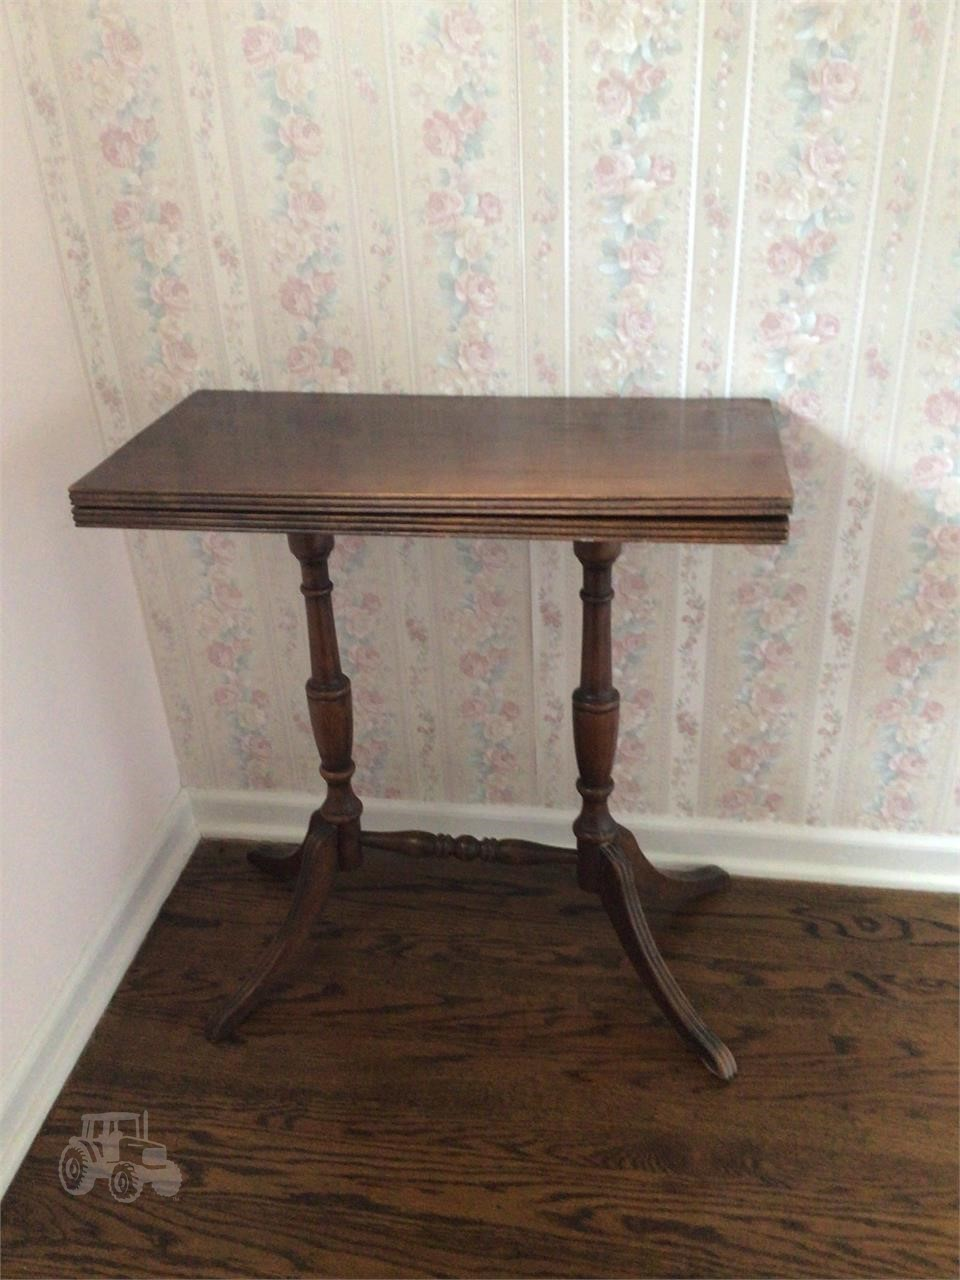 ANTIQUE TABLE Other Items For Sale   12 Listings   TractorHouse.com ...